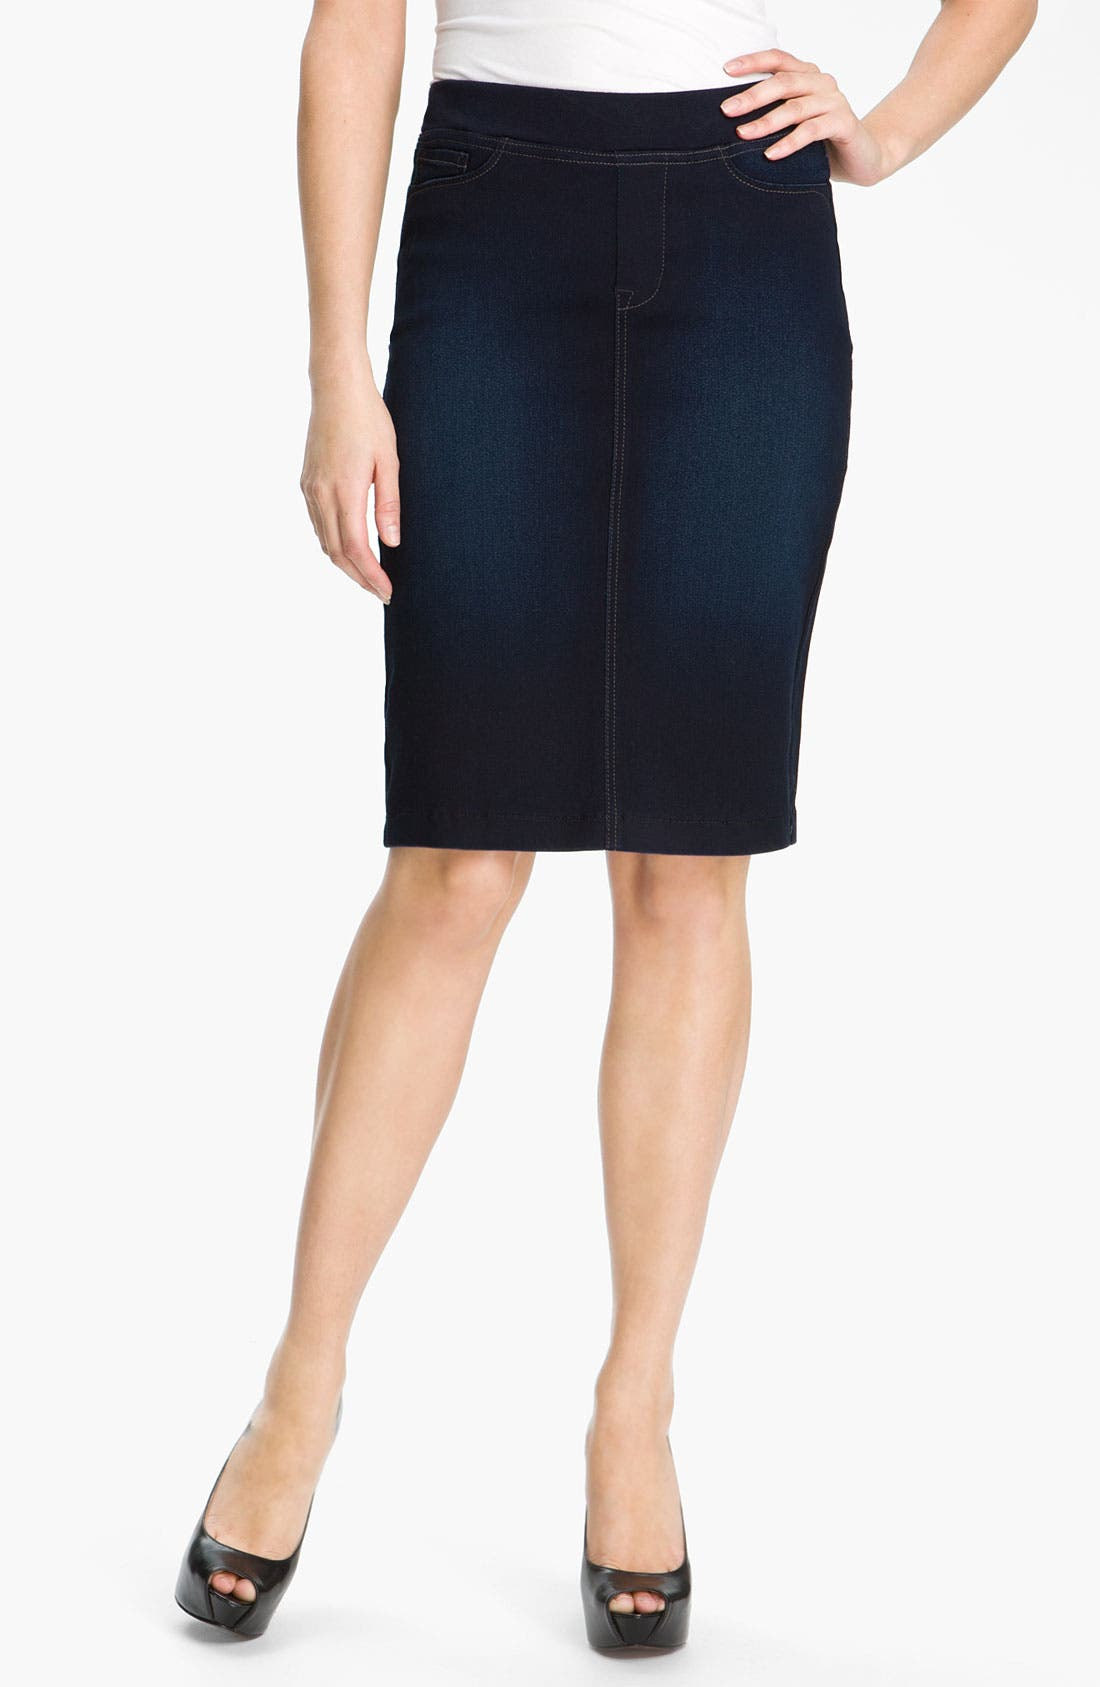 Alternate Image 1 Selected - NYDJ 'Caitlyn' Pull-On Denim Skirt (Petite)